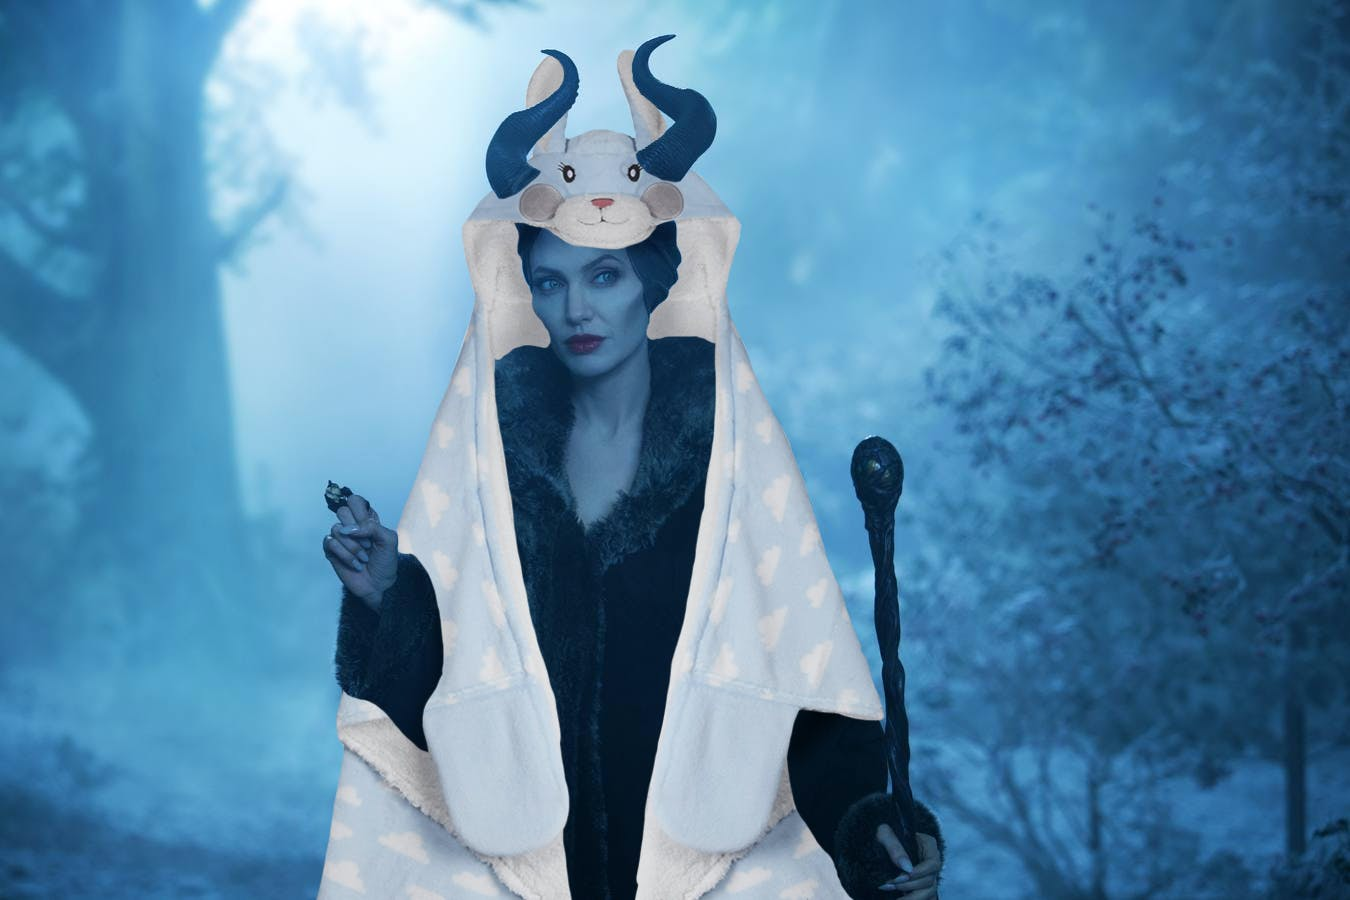 Maleficent wearing a rabbit slanket